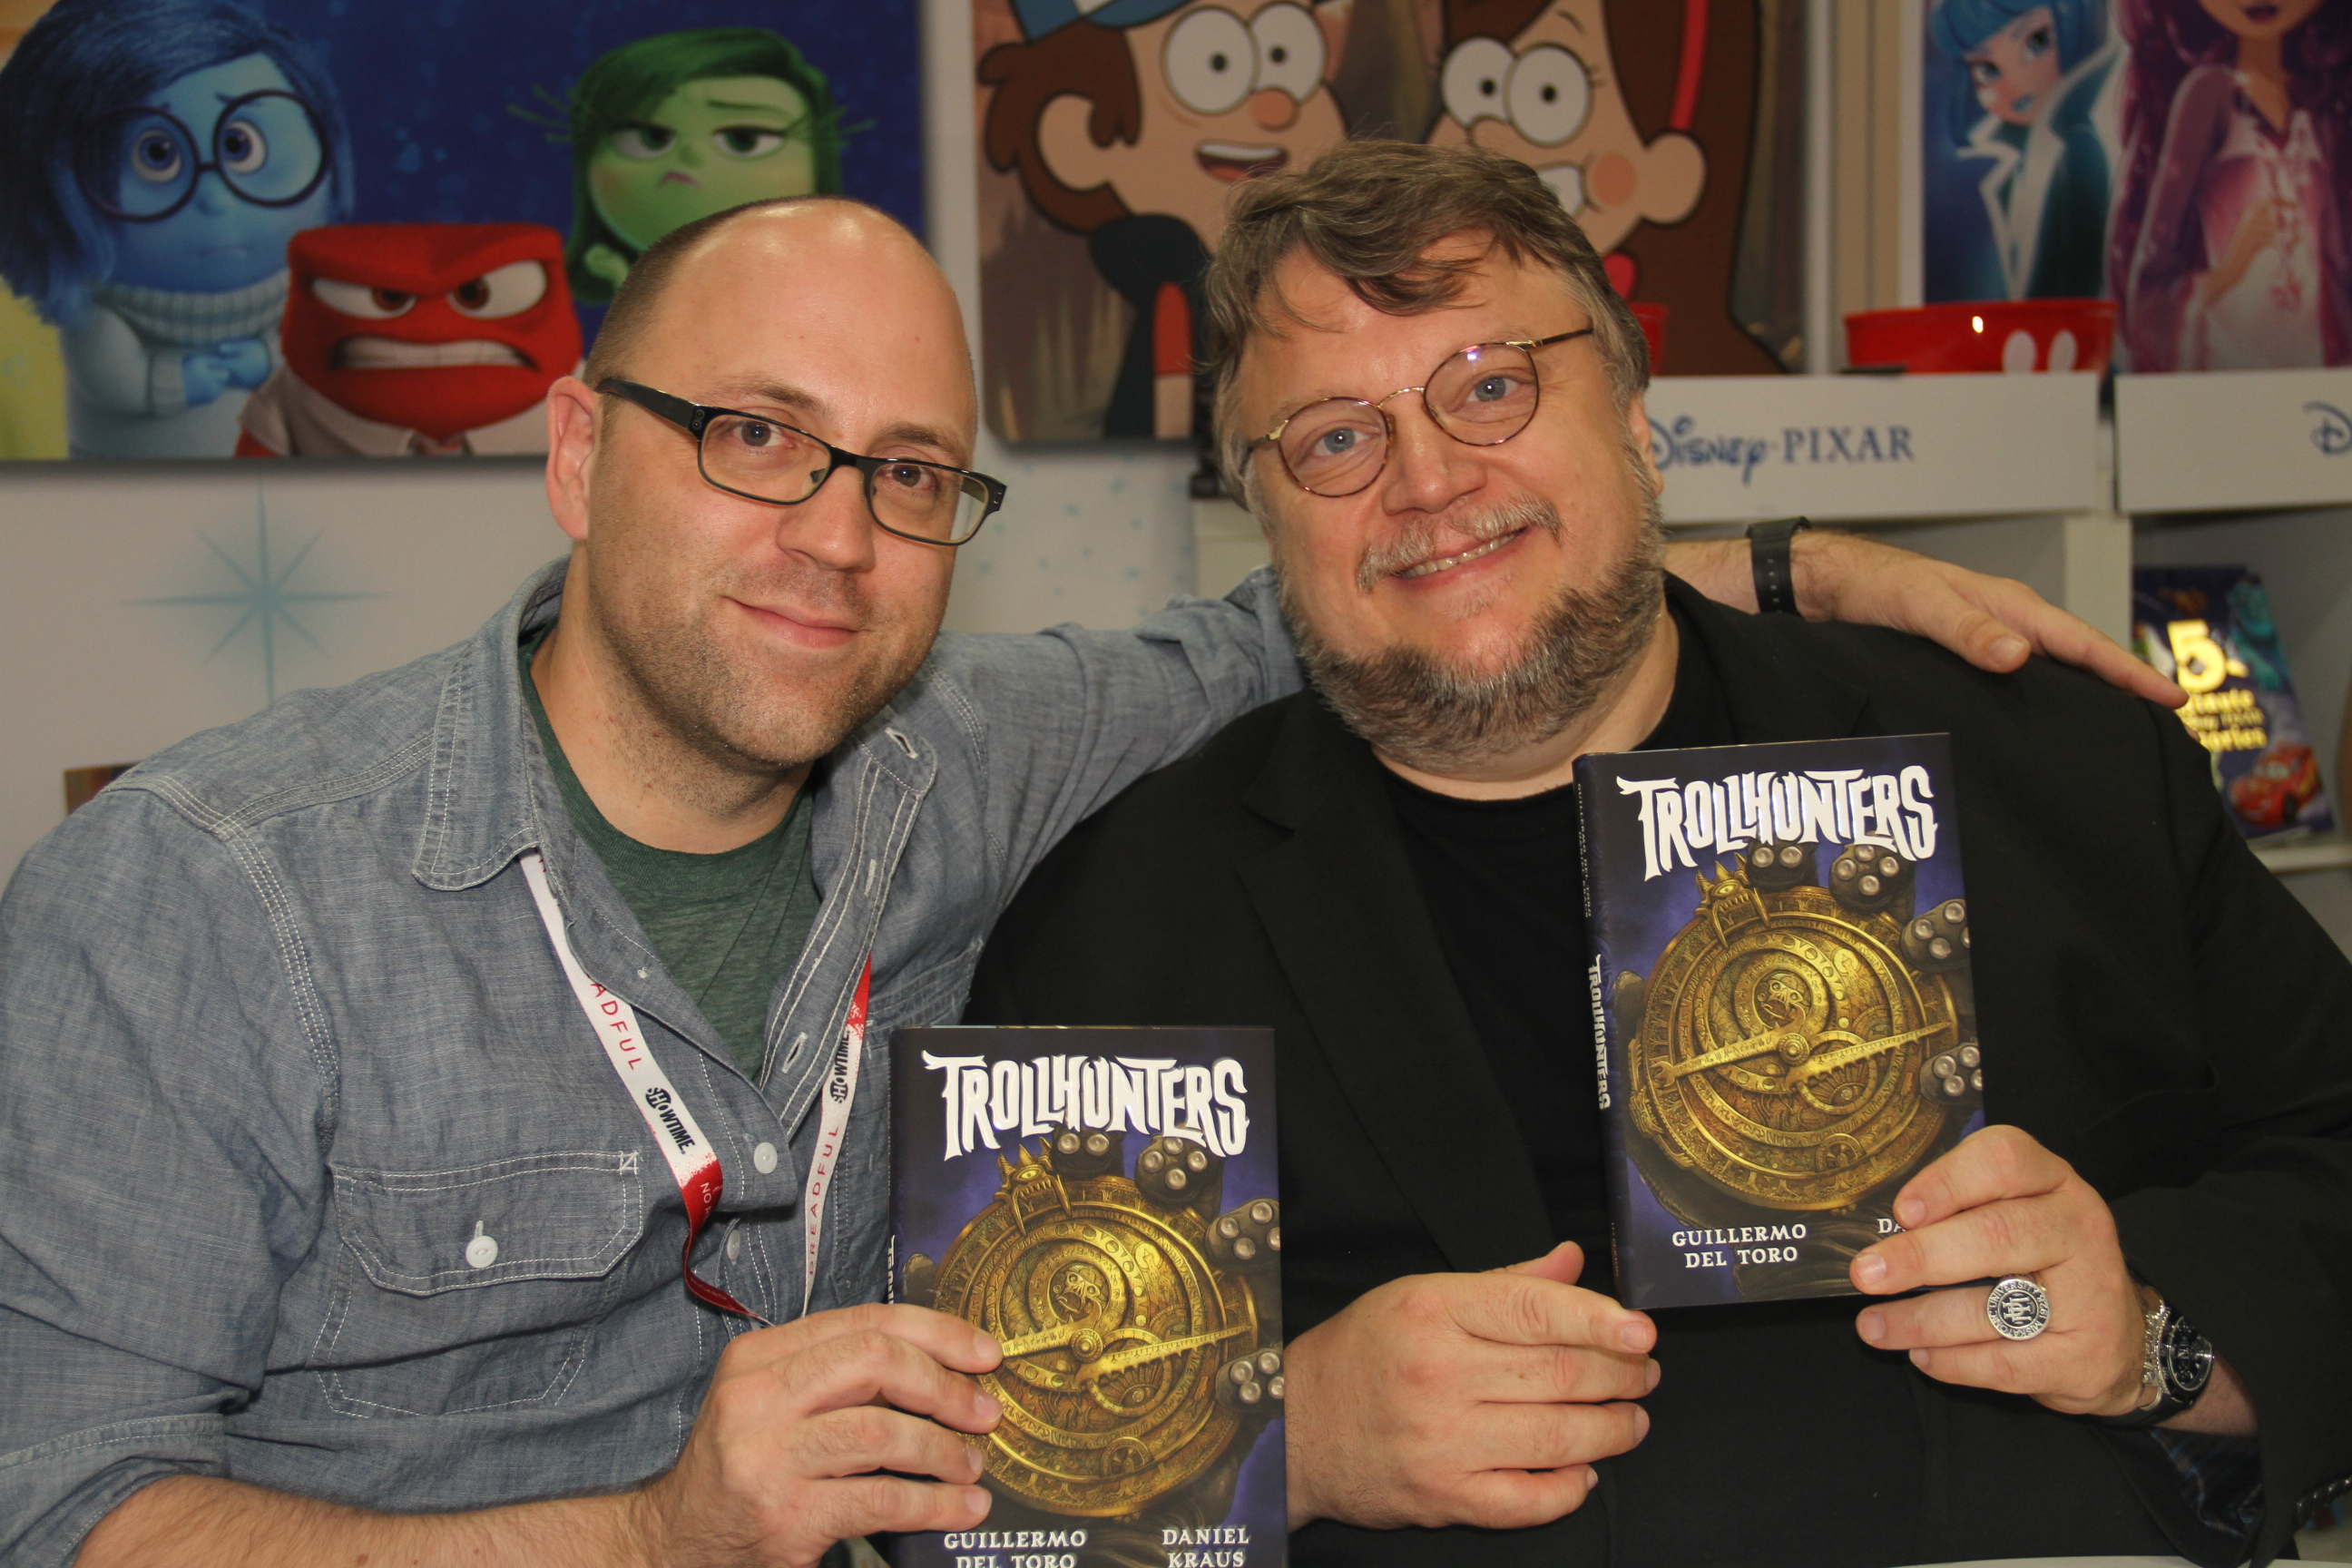 Guillermo del Toro Is Making a Netflix Animated Series on Horrifying Trolls Taking Over a City